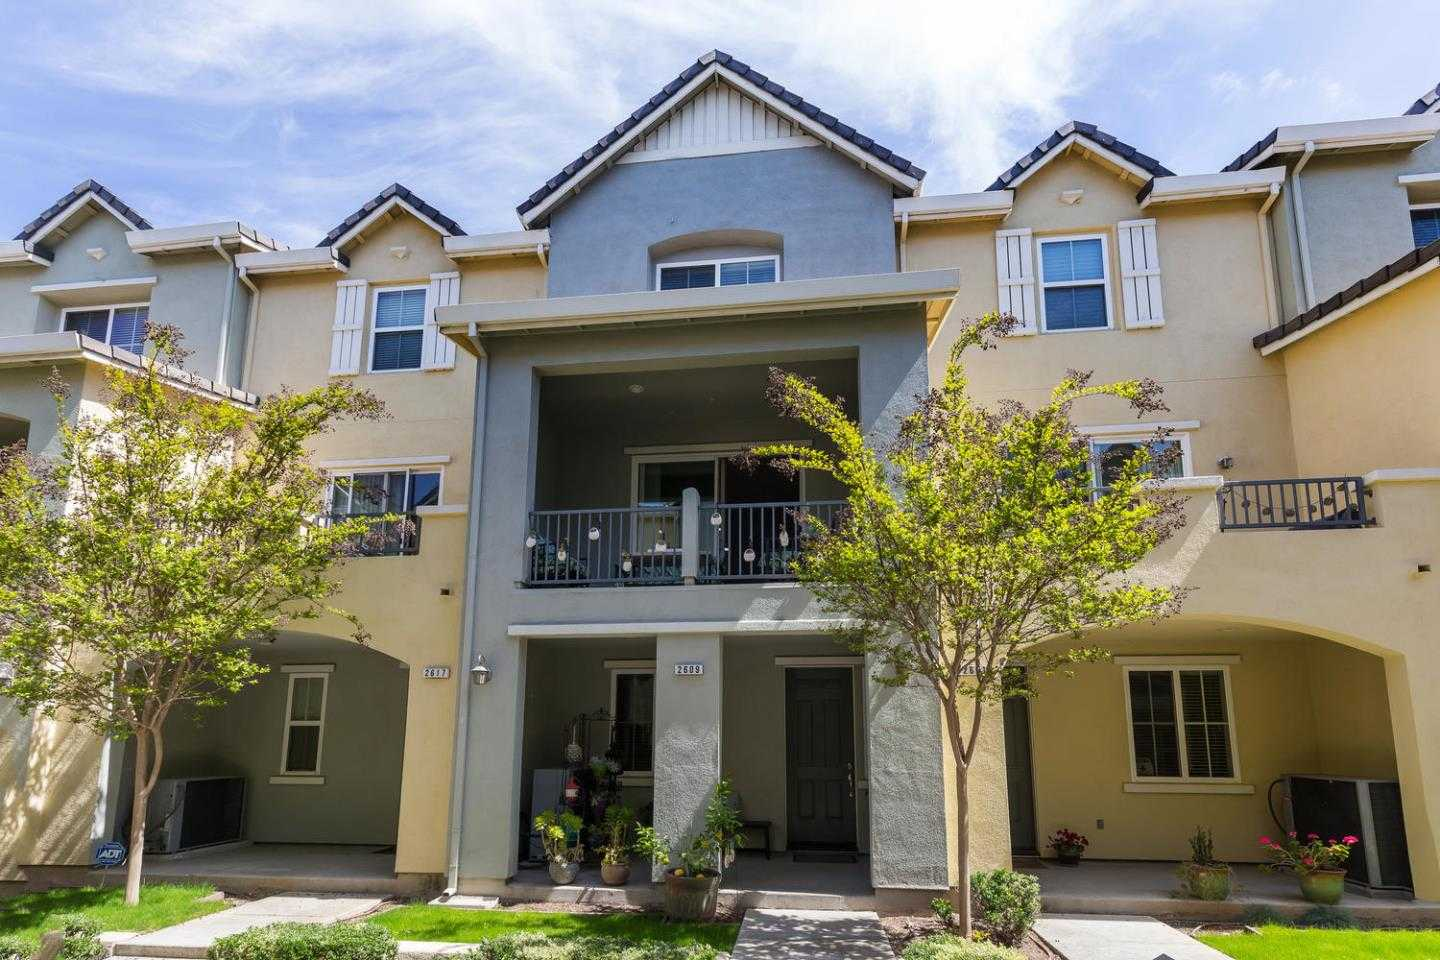 $947,888 - 4Br/4Ba -  for Sale in San Jose